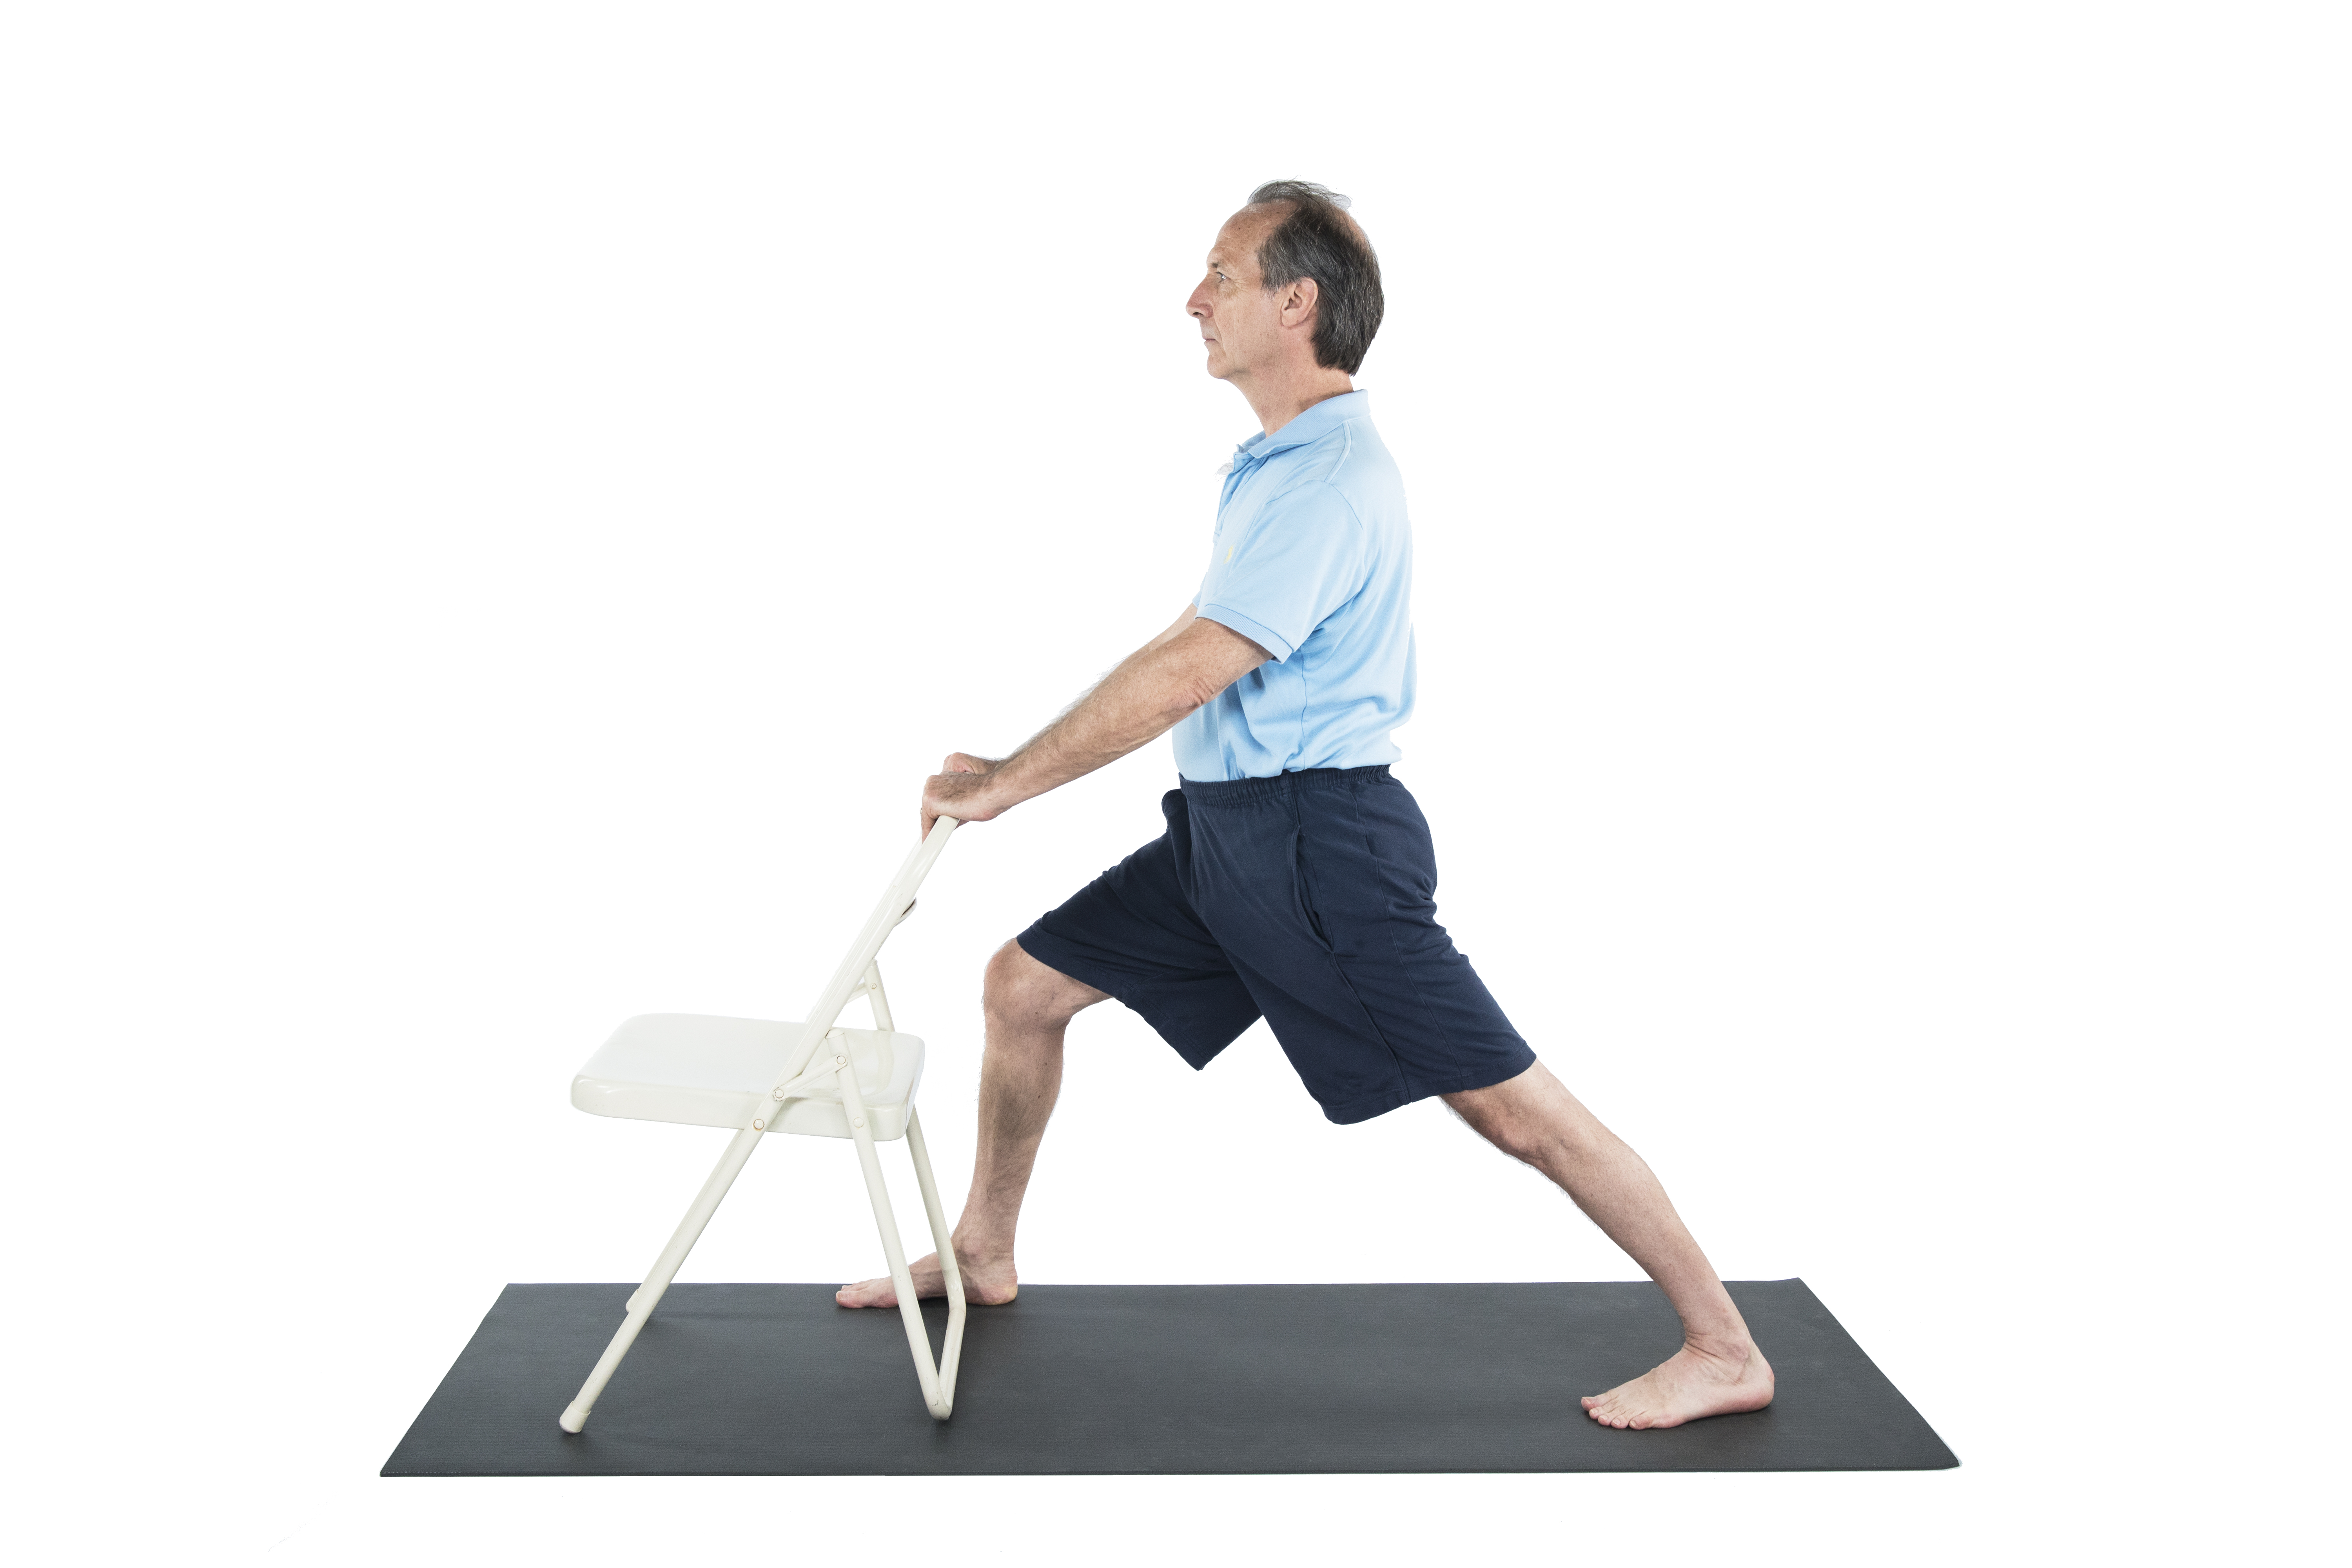 A man practicing Warrior 1 pose (Virabhadrasana I) with a chair to warm up the hips in preparation for Warrior 2 yoga pose